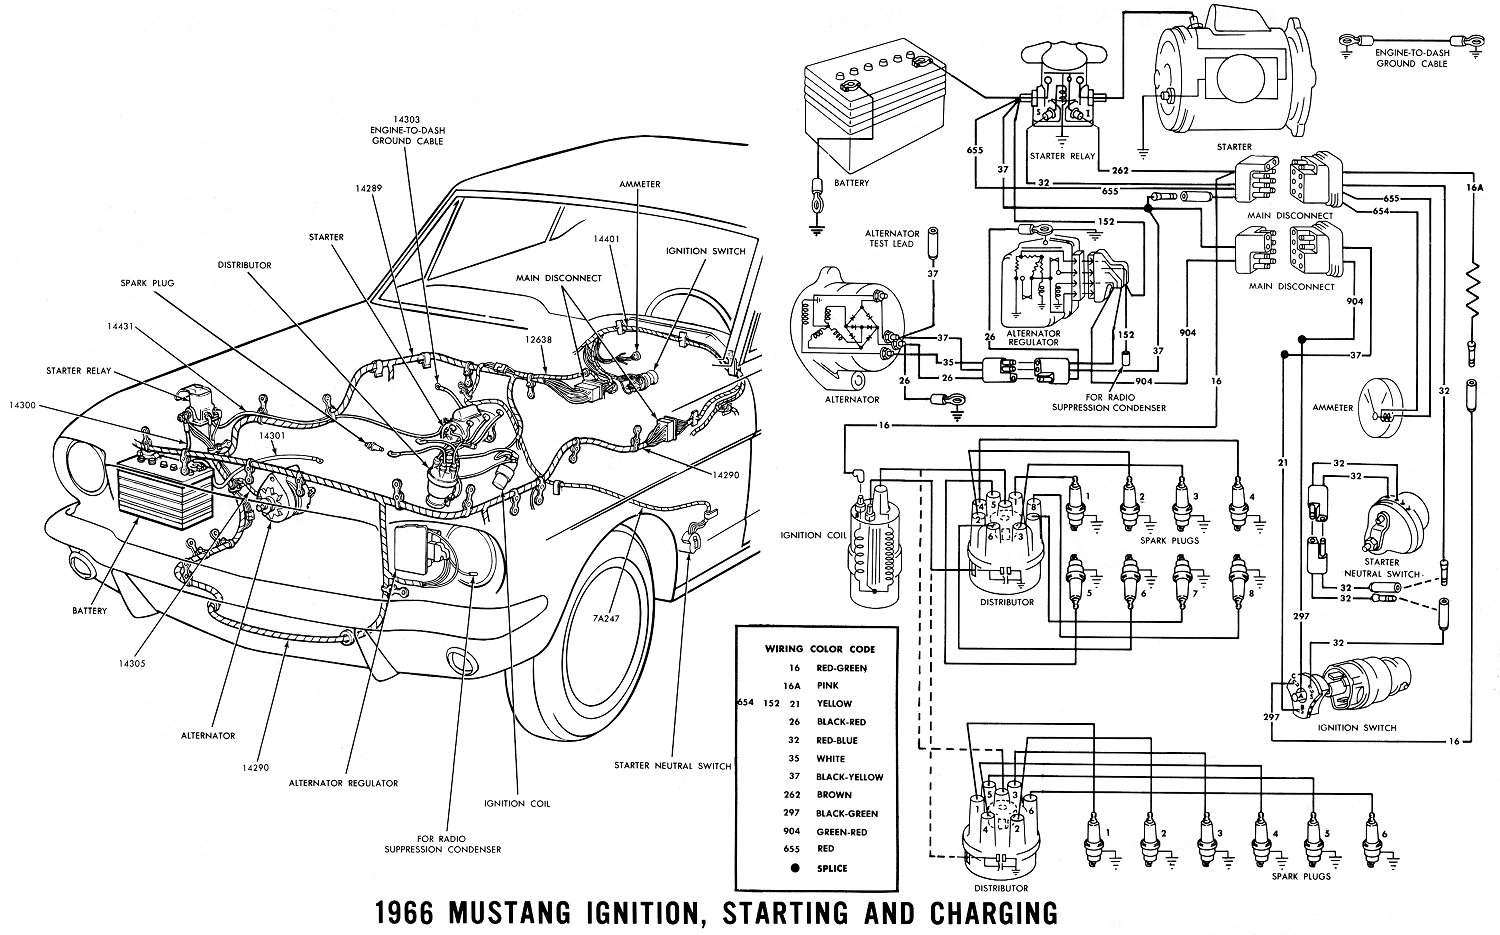 66ignit 1966 mustang wiring diagrams average joe restoration 1965 ford mustang wiring diagrams at arjmand.co